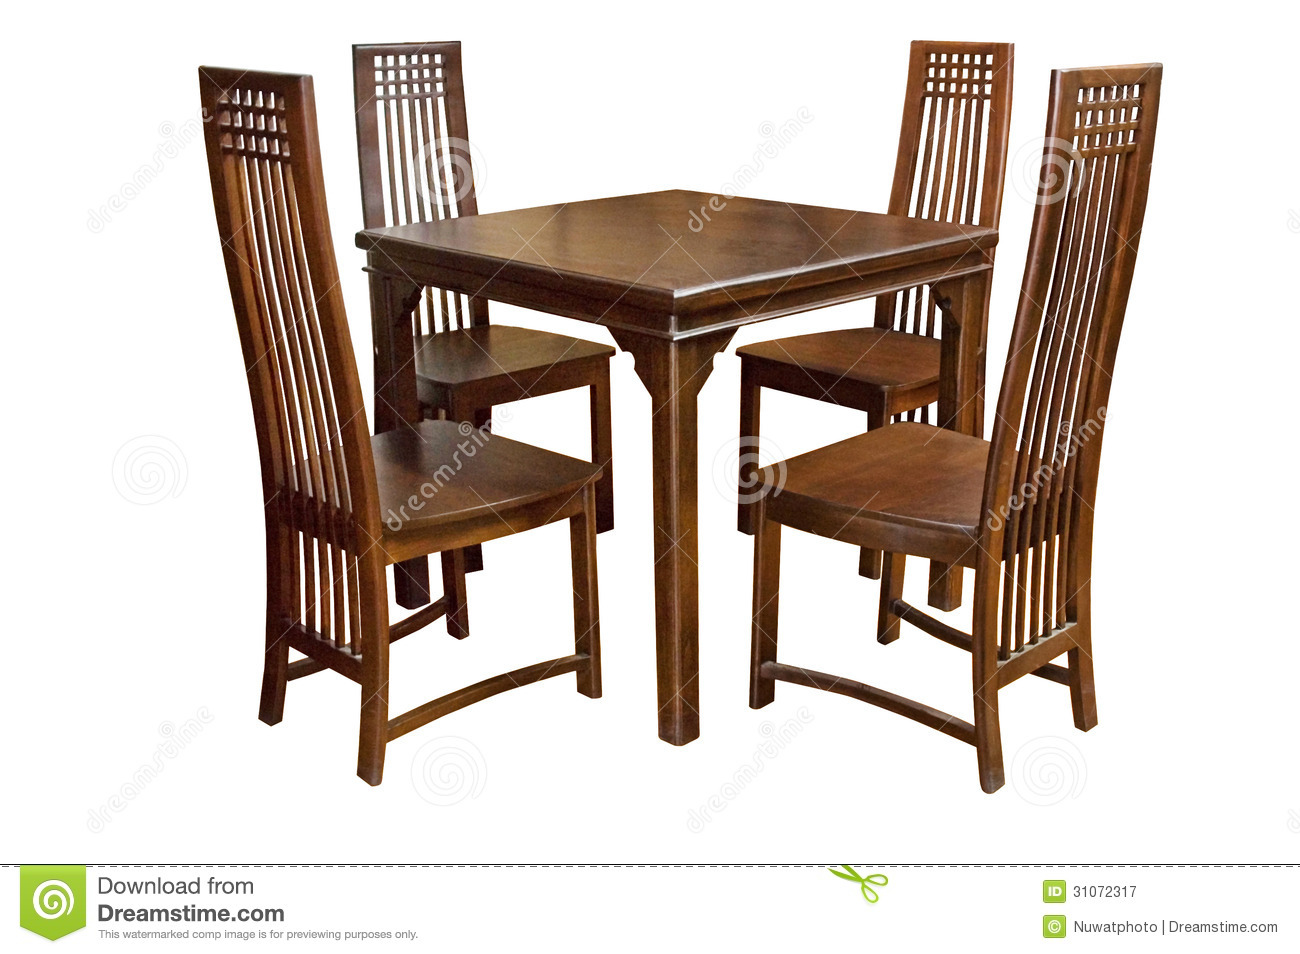 Dining Table And Chairs Isolated Royalty Free Stock  : dining table chairs isolated white background 31072317 from www.dreamstime.com size 1300 x 954 jpeg 270kB